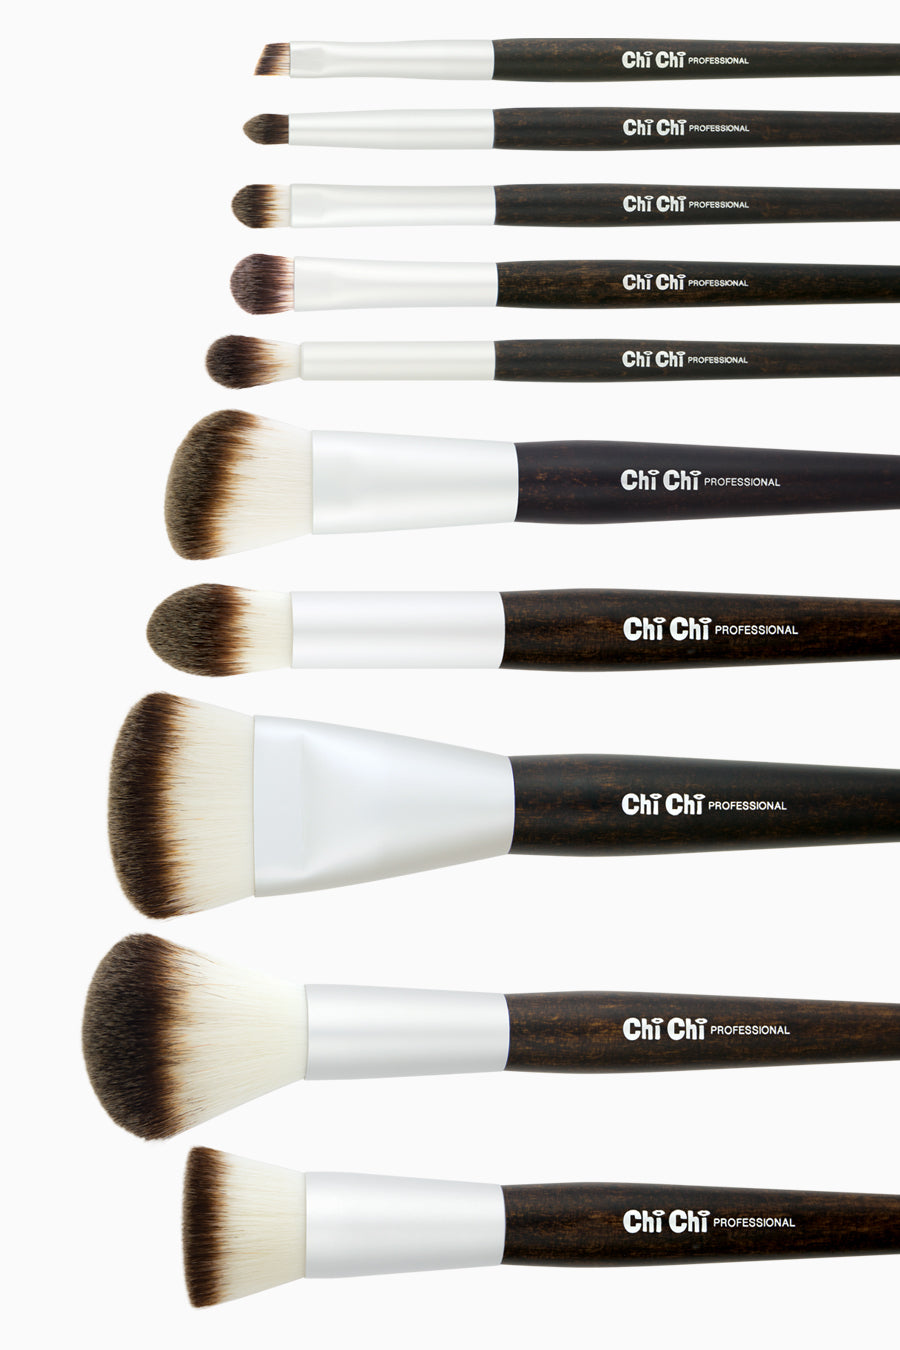 The Ultimate Professional Brush Set